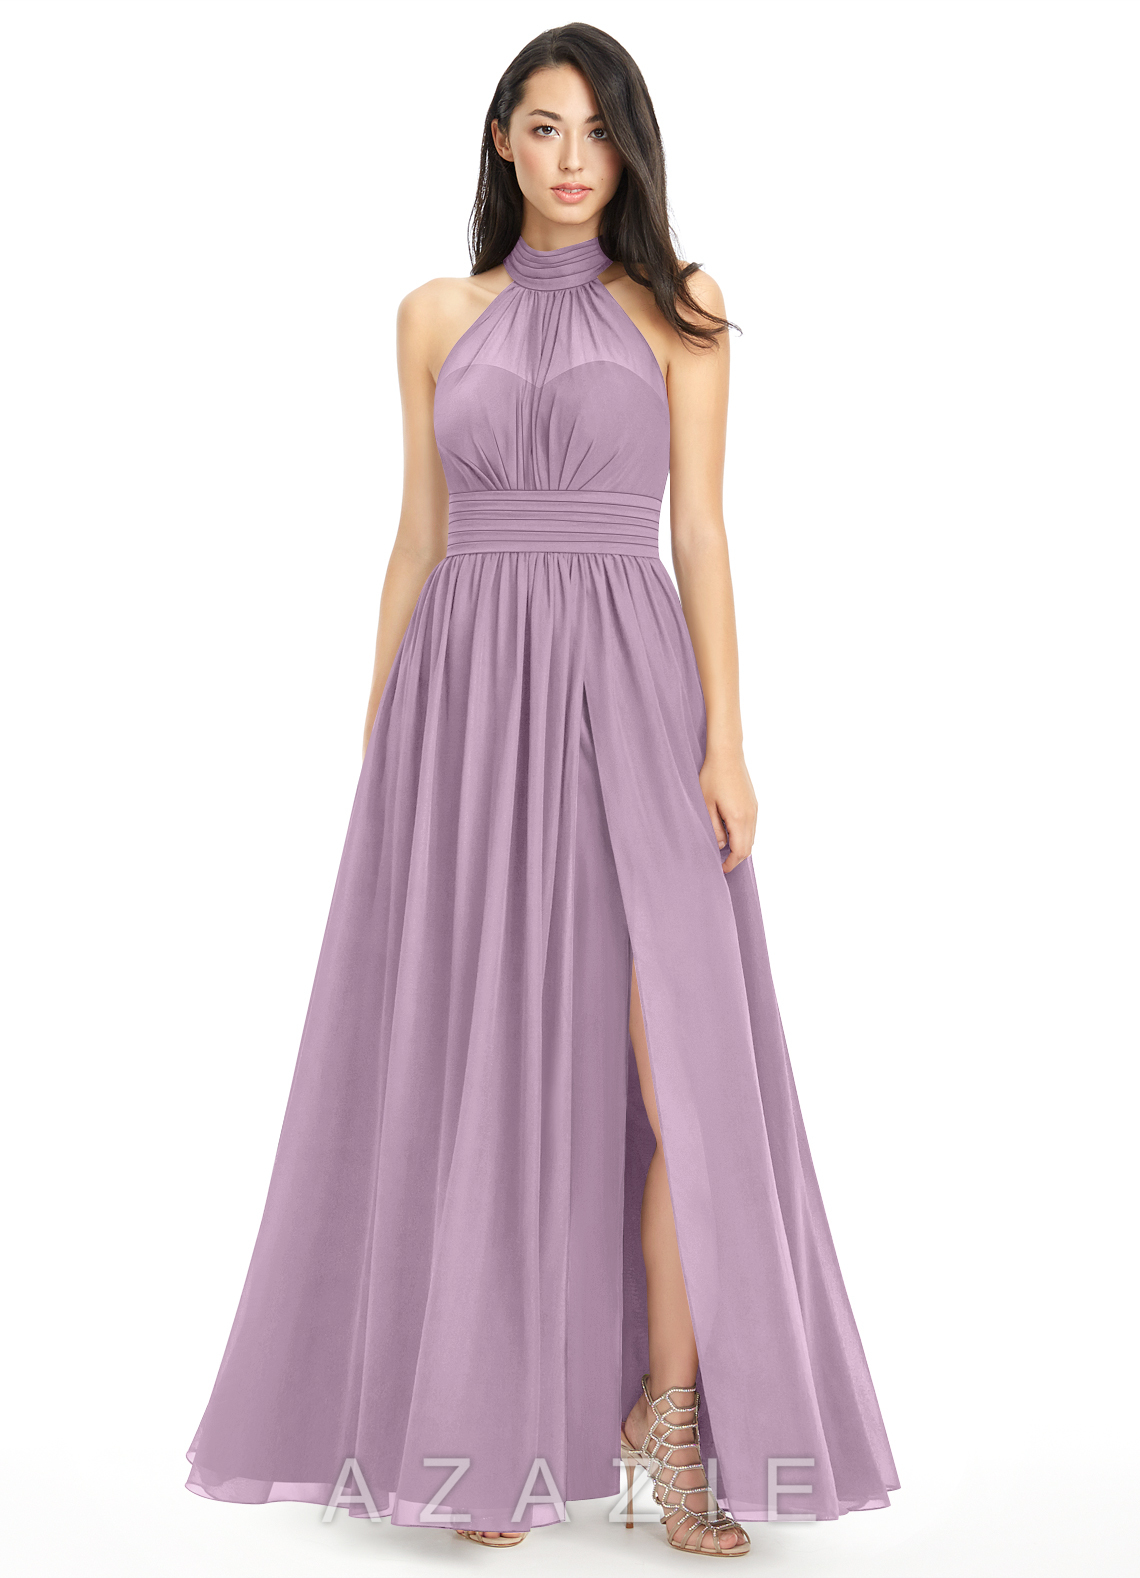 Permalink to Wisteria Colored Bridesmaid Dresses